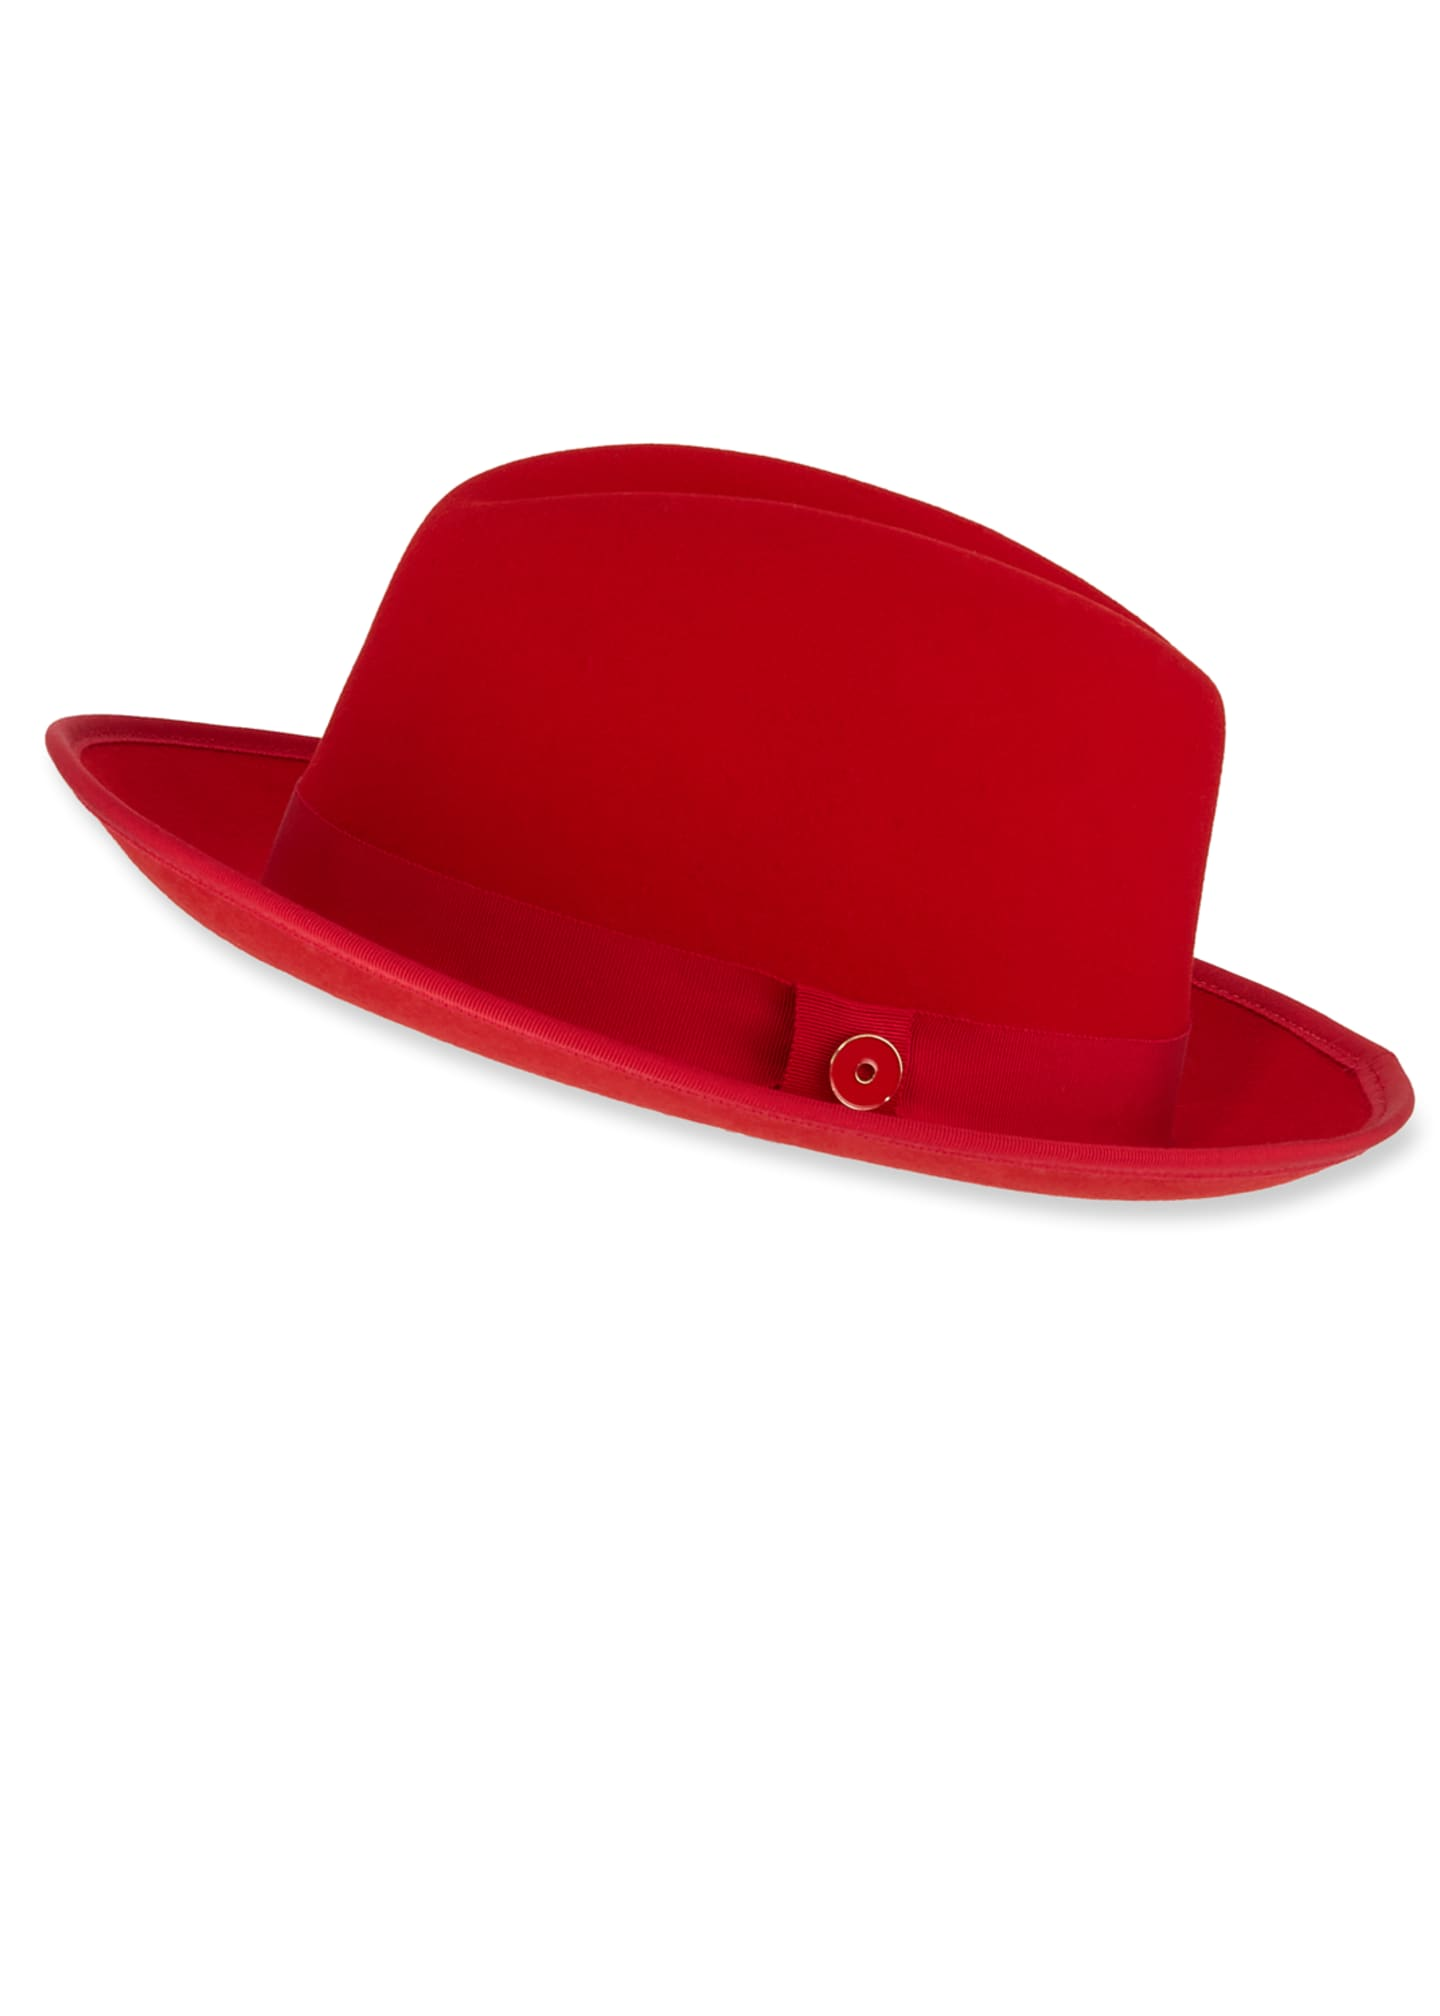 Keith and James Men's King Red-Brim Wool Fedora